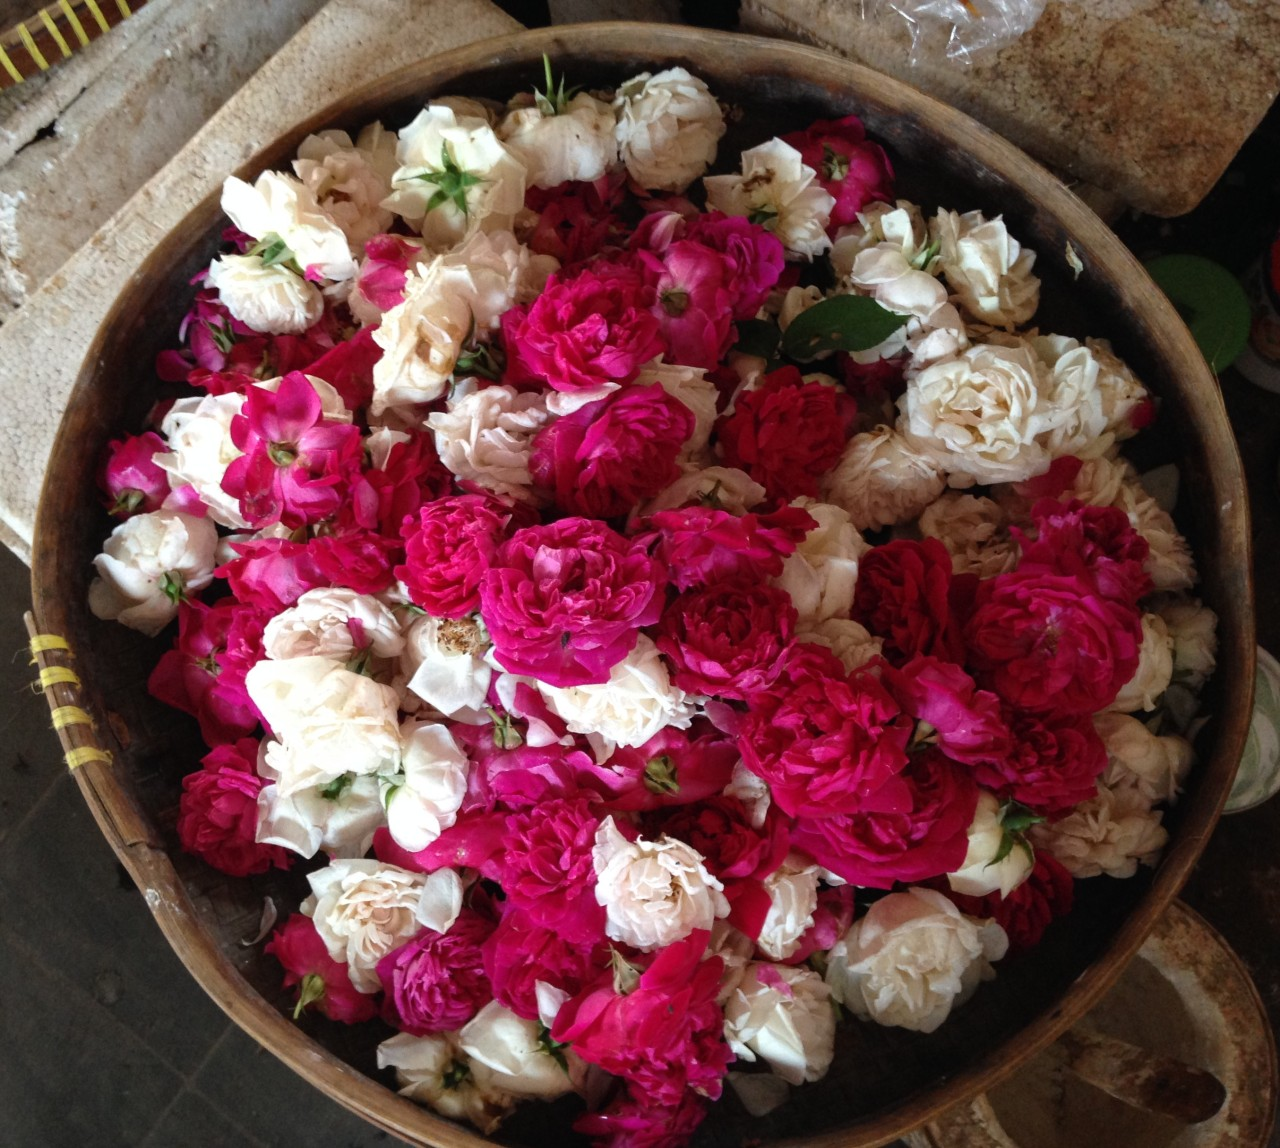 The Bali Diary: Wedding Day, Part2